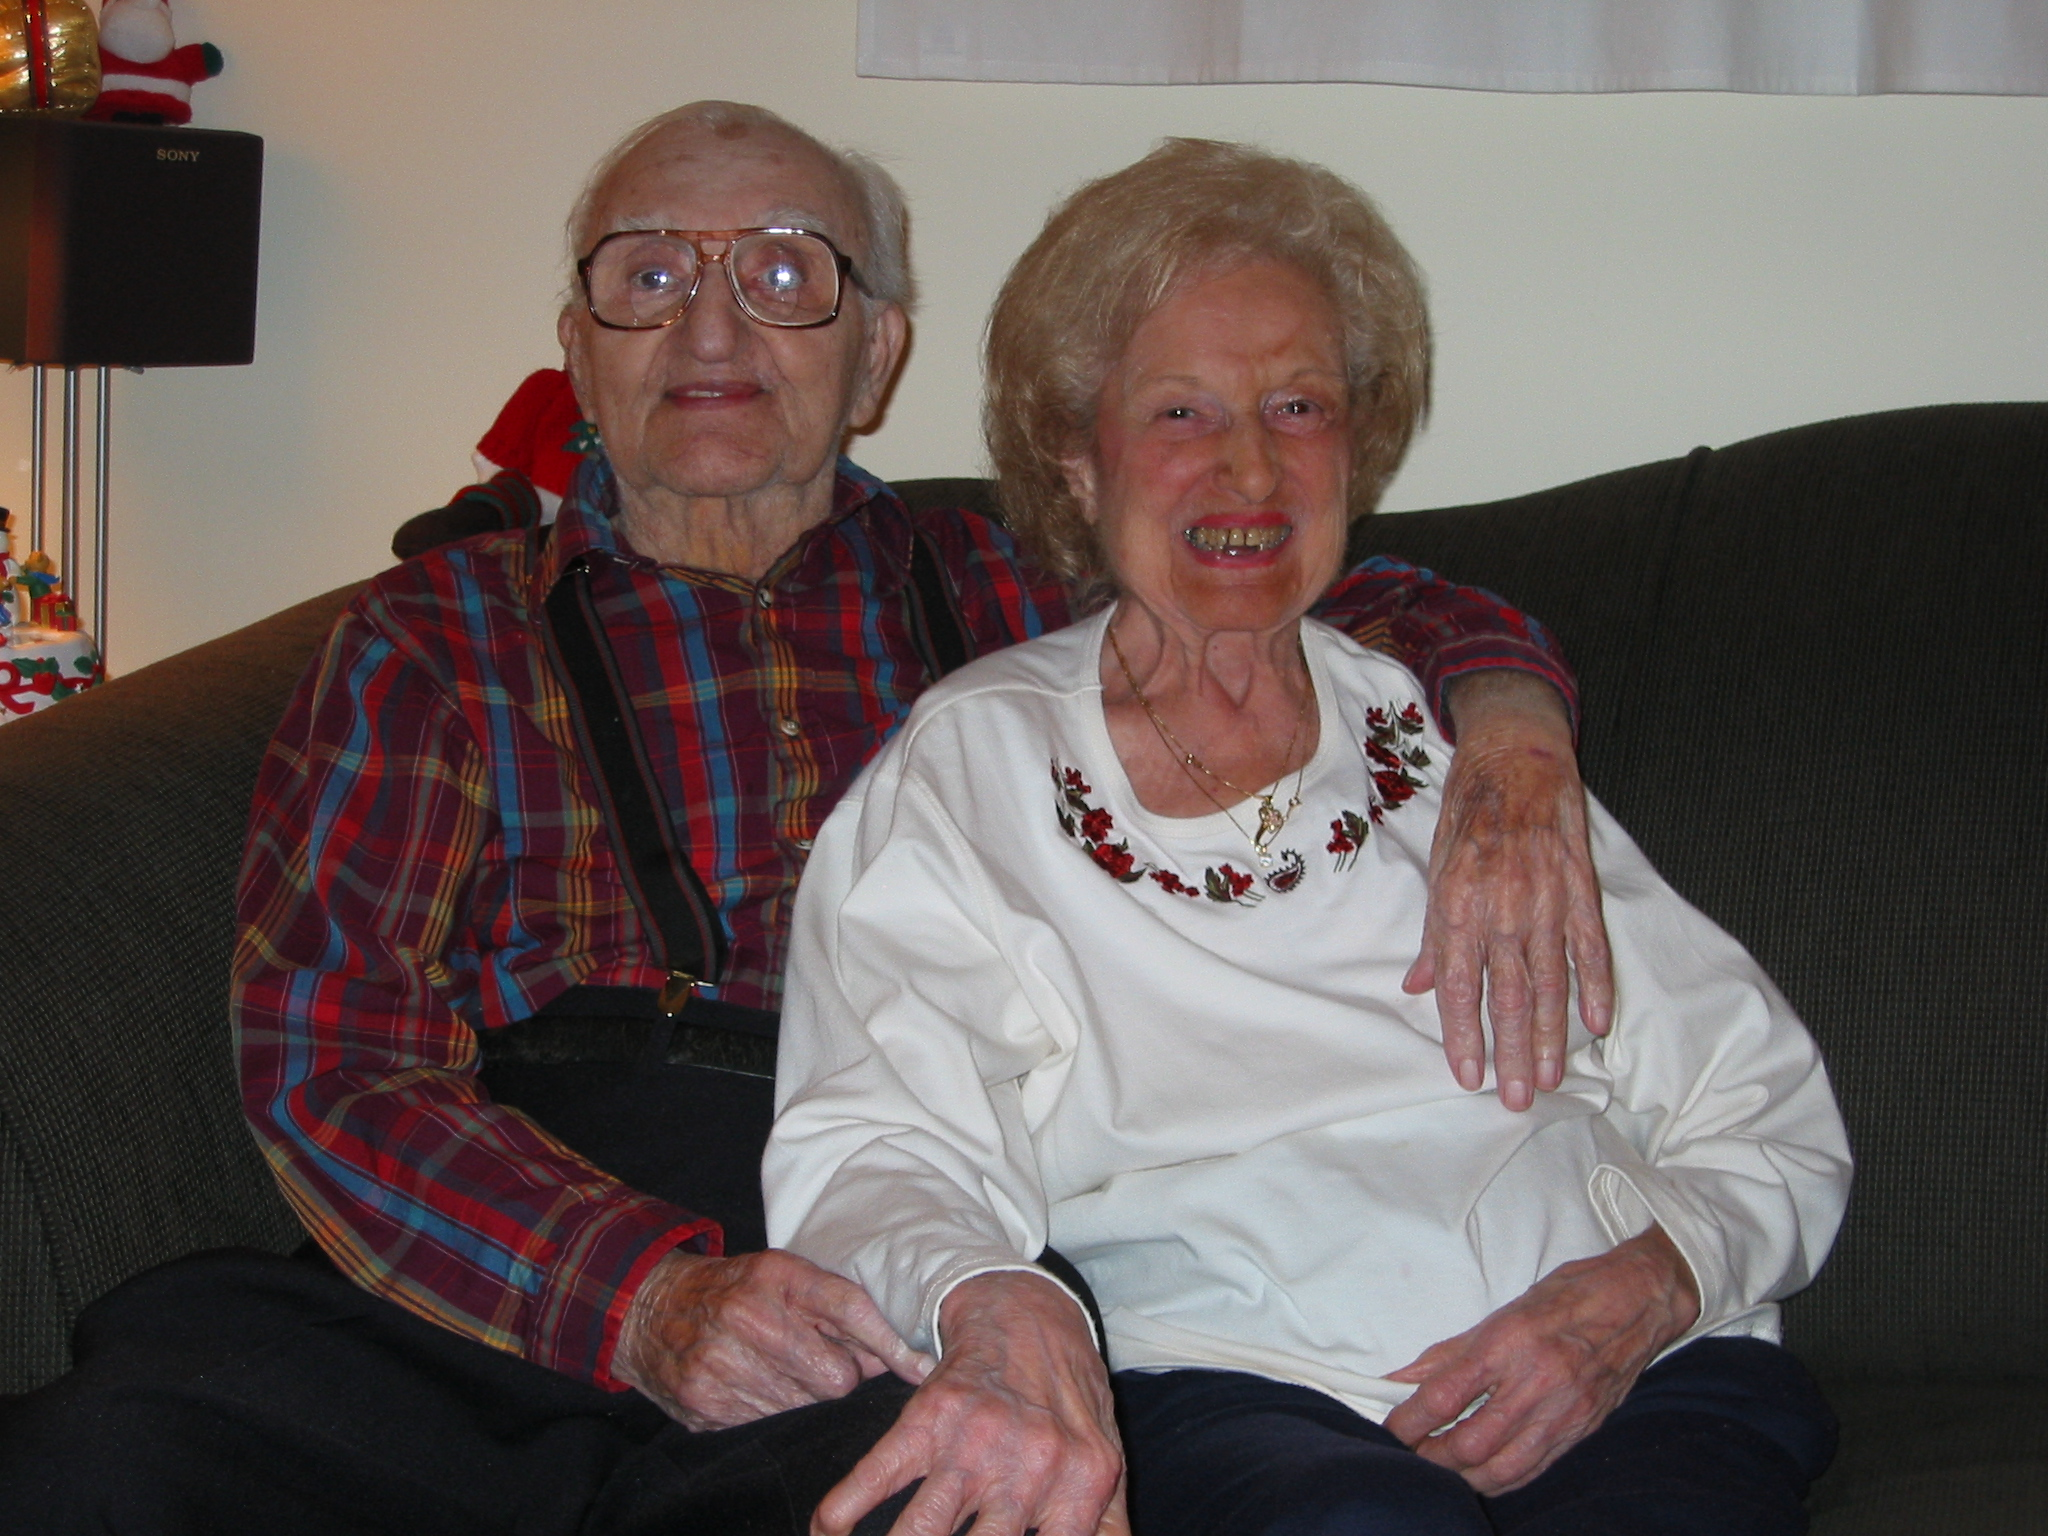 My grandparents at Christmas 2002.